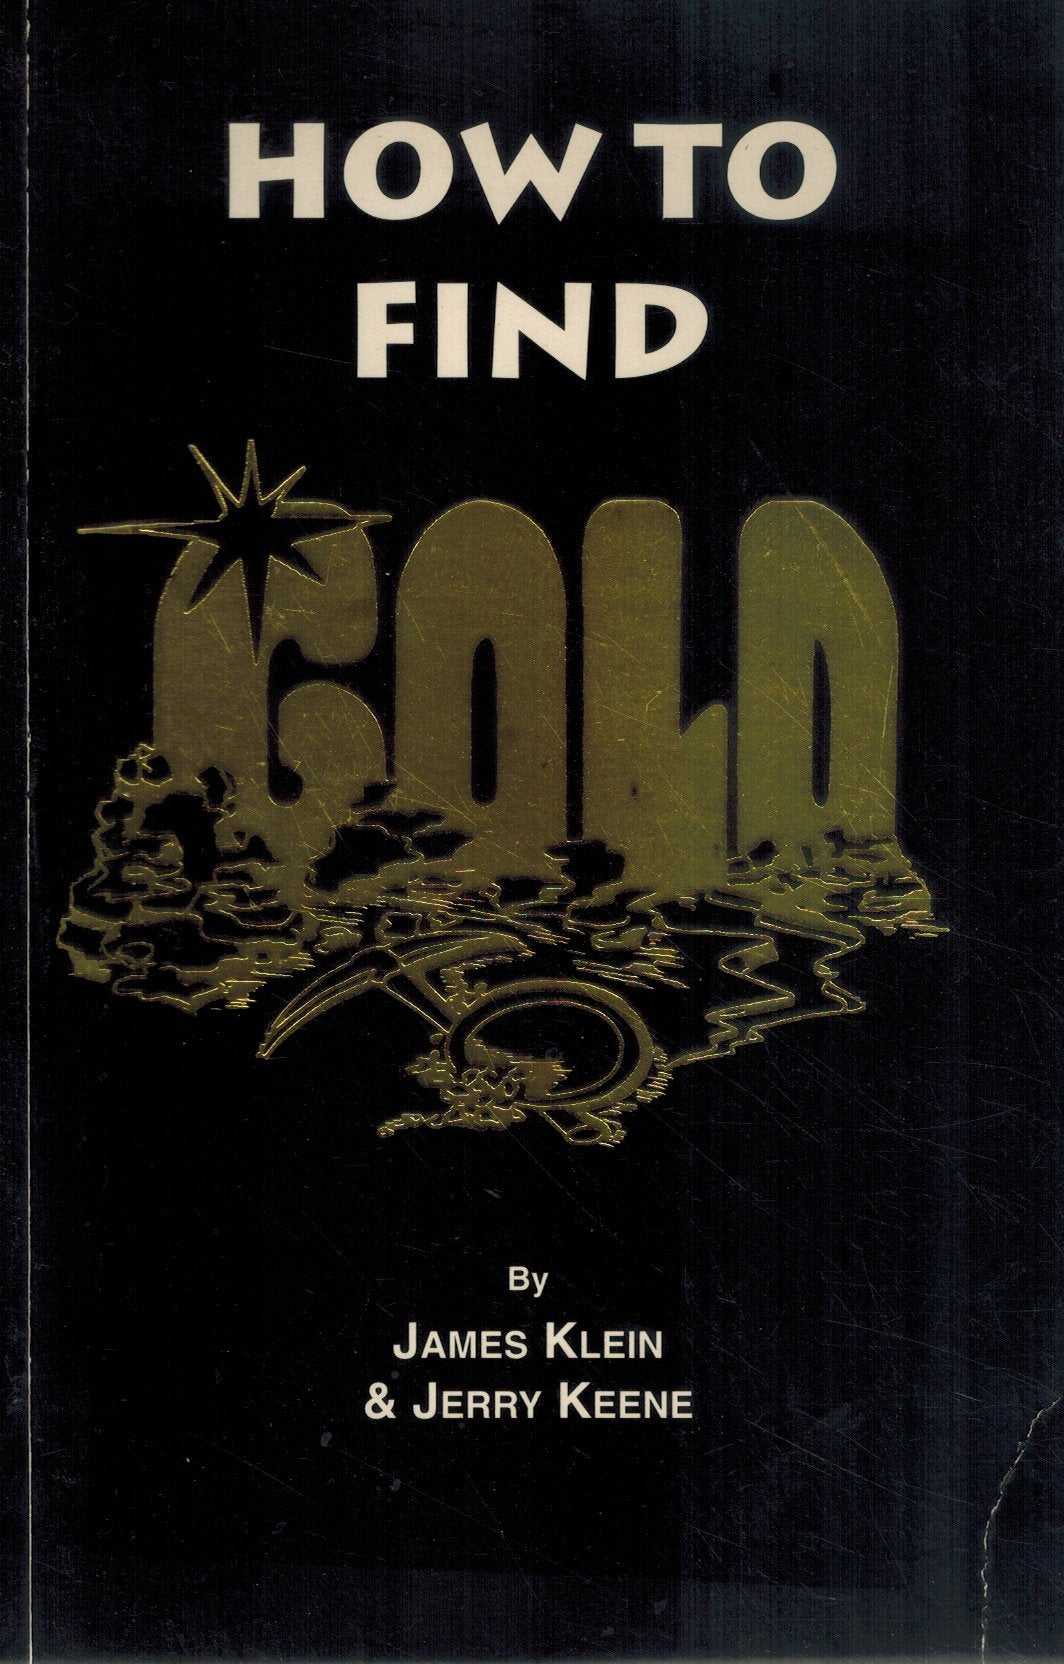 How to Find Gold  by Klein, James & Jerry Keene